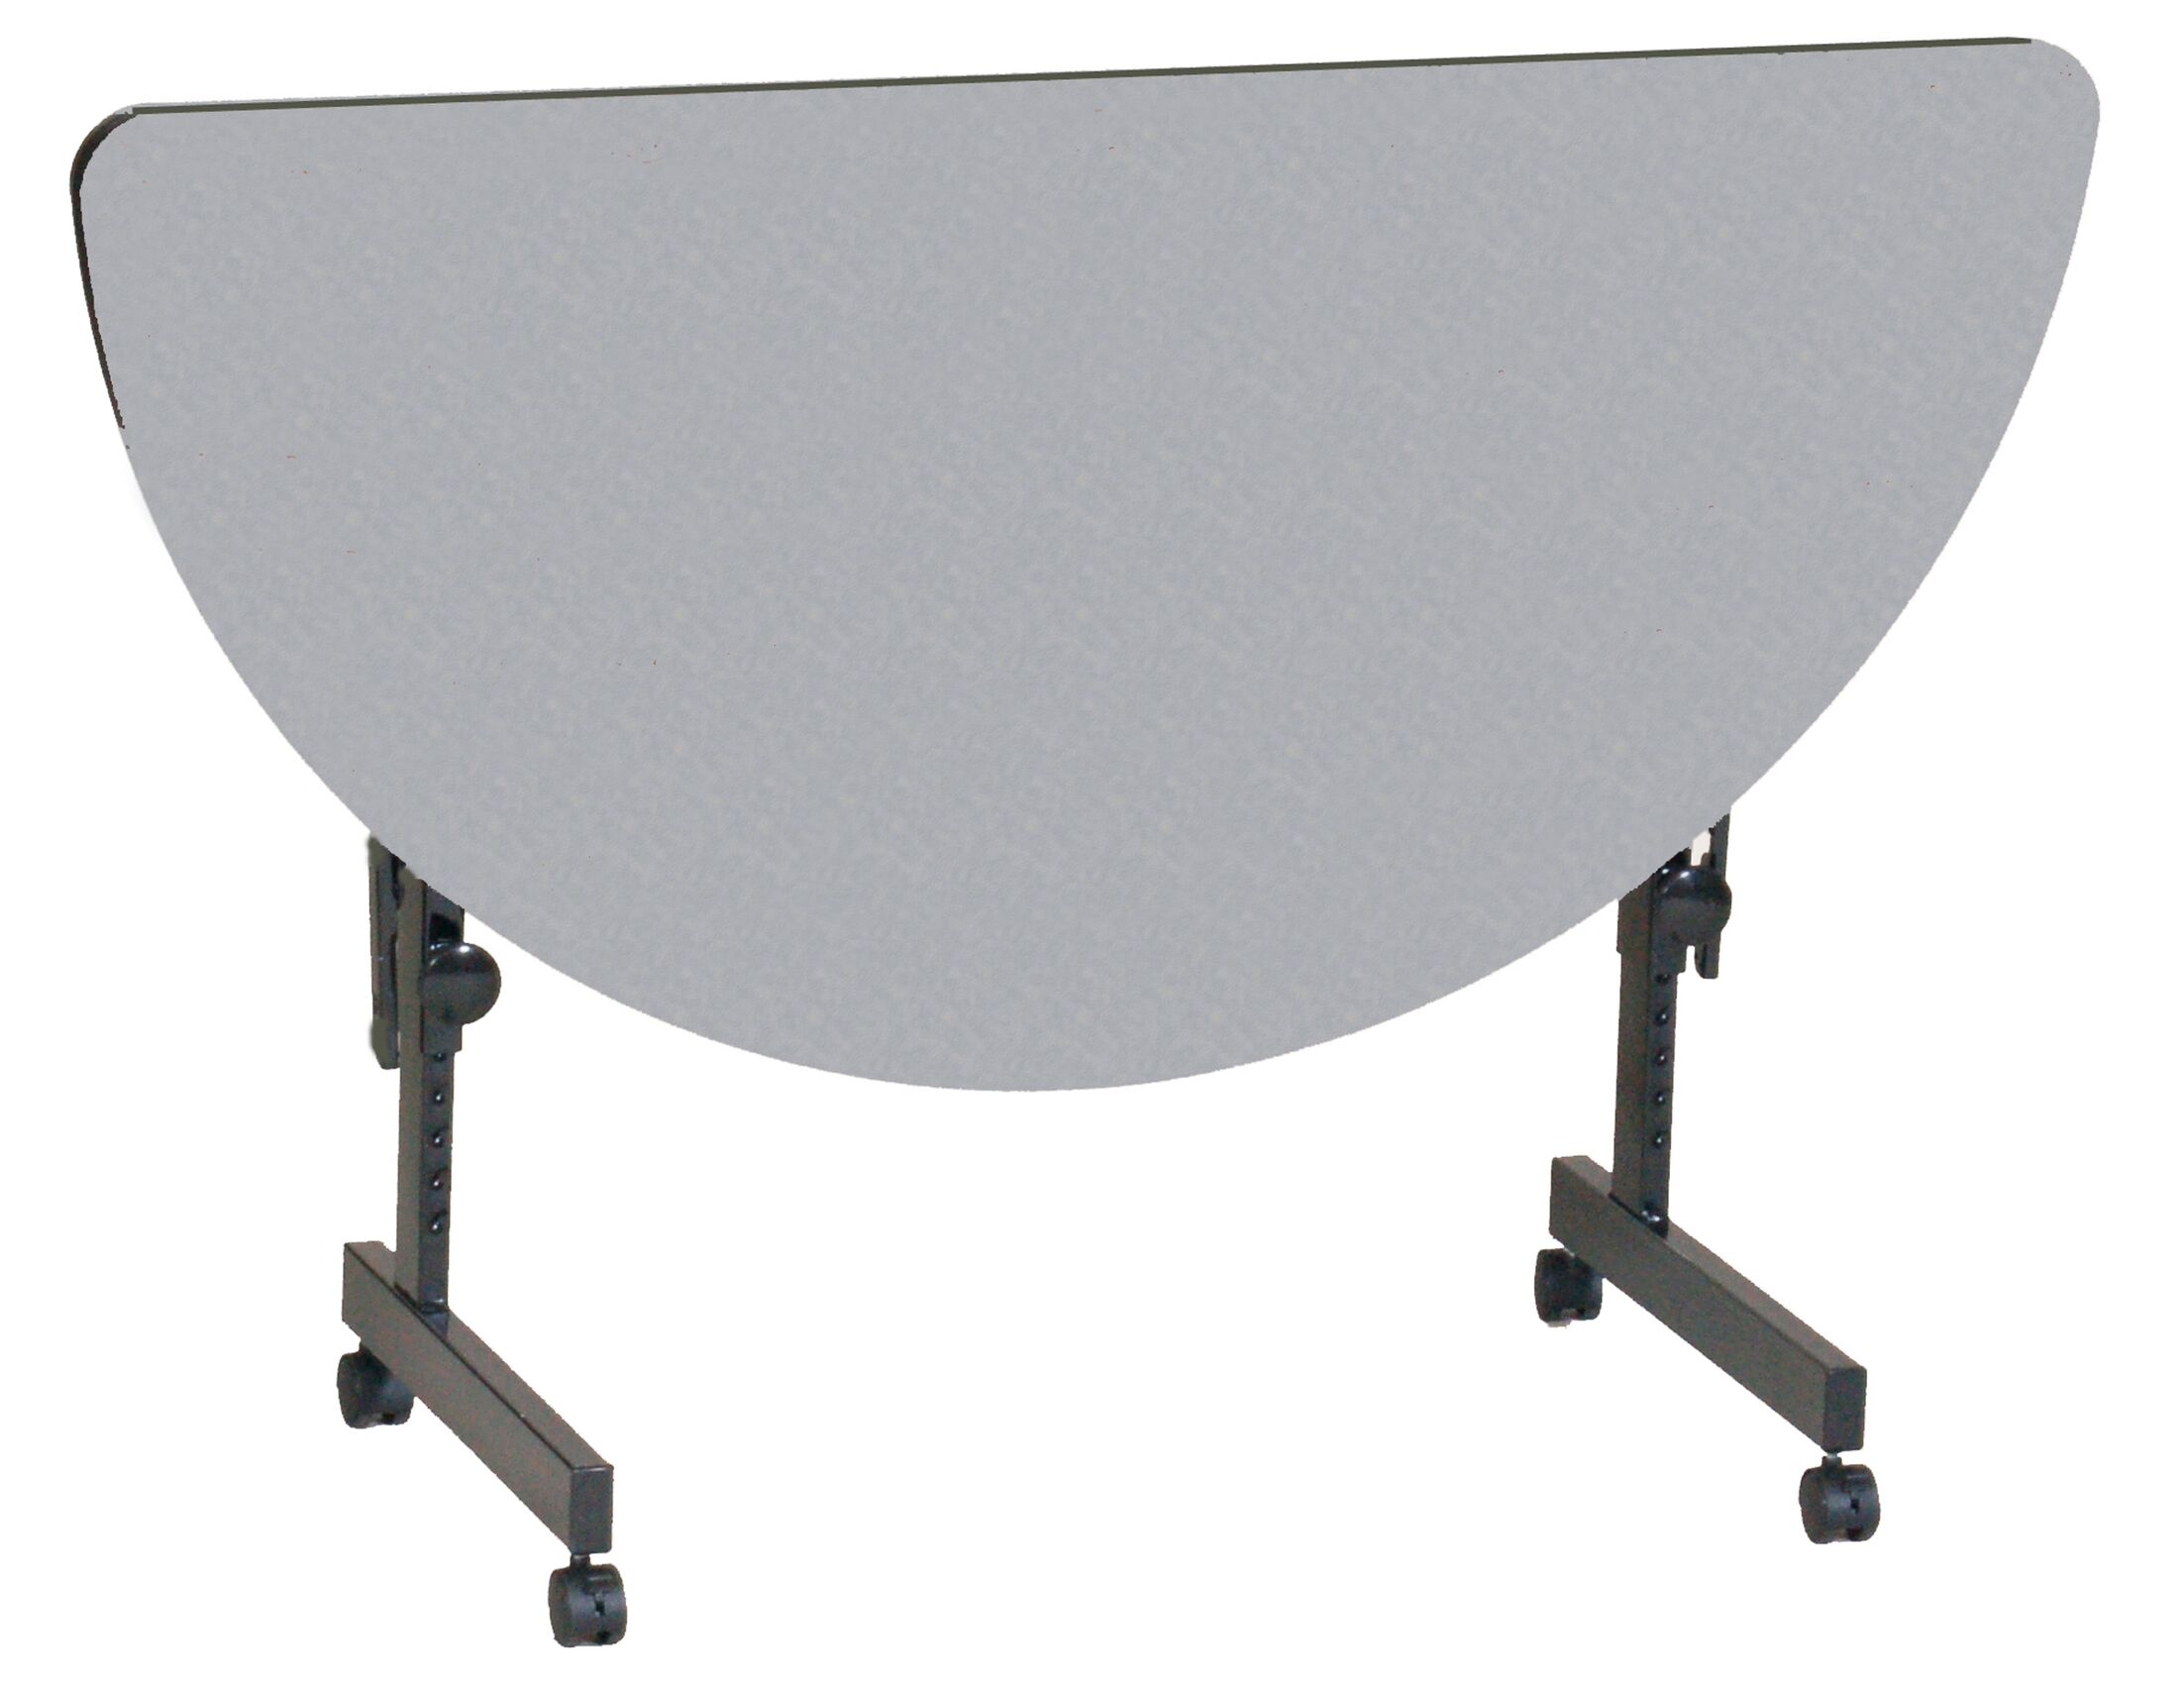 48'' W Flipper Height Adjustable Training Table with Modesty Panel Tabletop Finish: Gray Granite